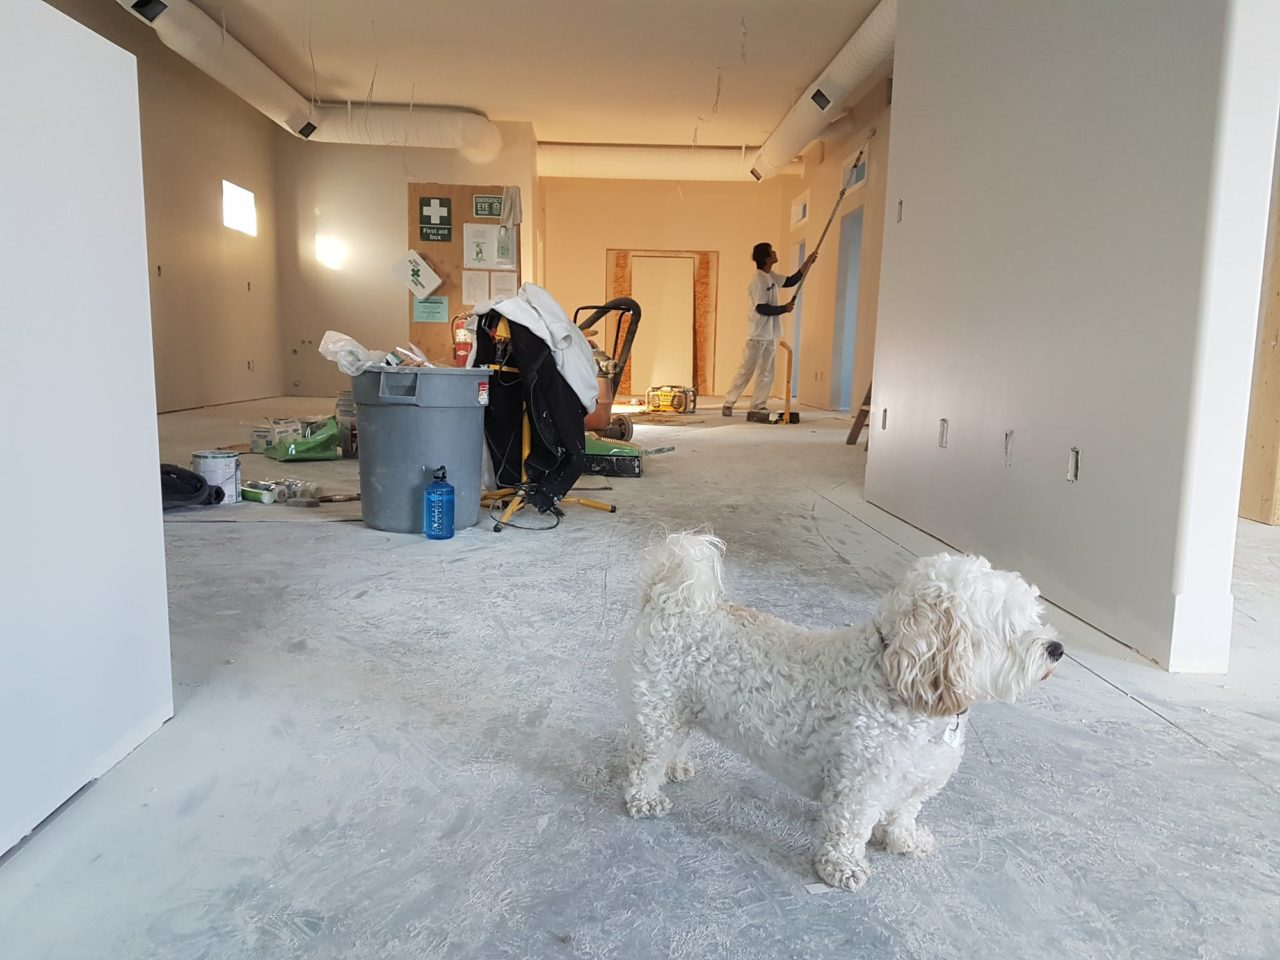 A white dog stands in front of two professional home remodeling contractors as they work.